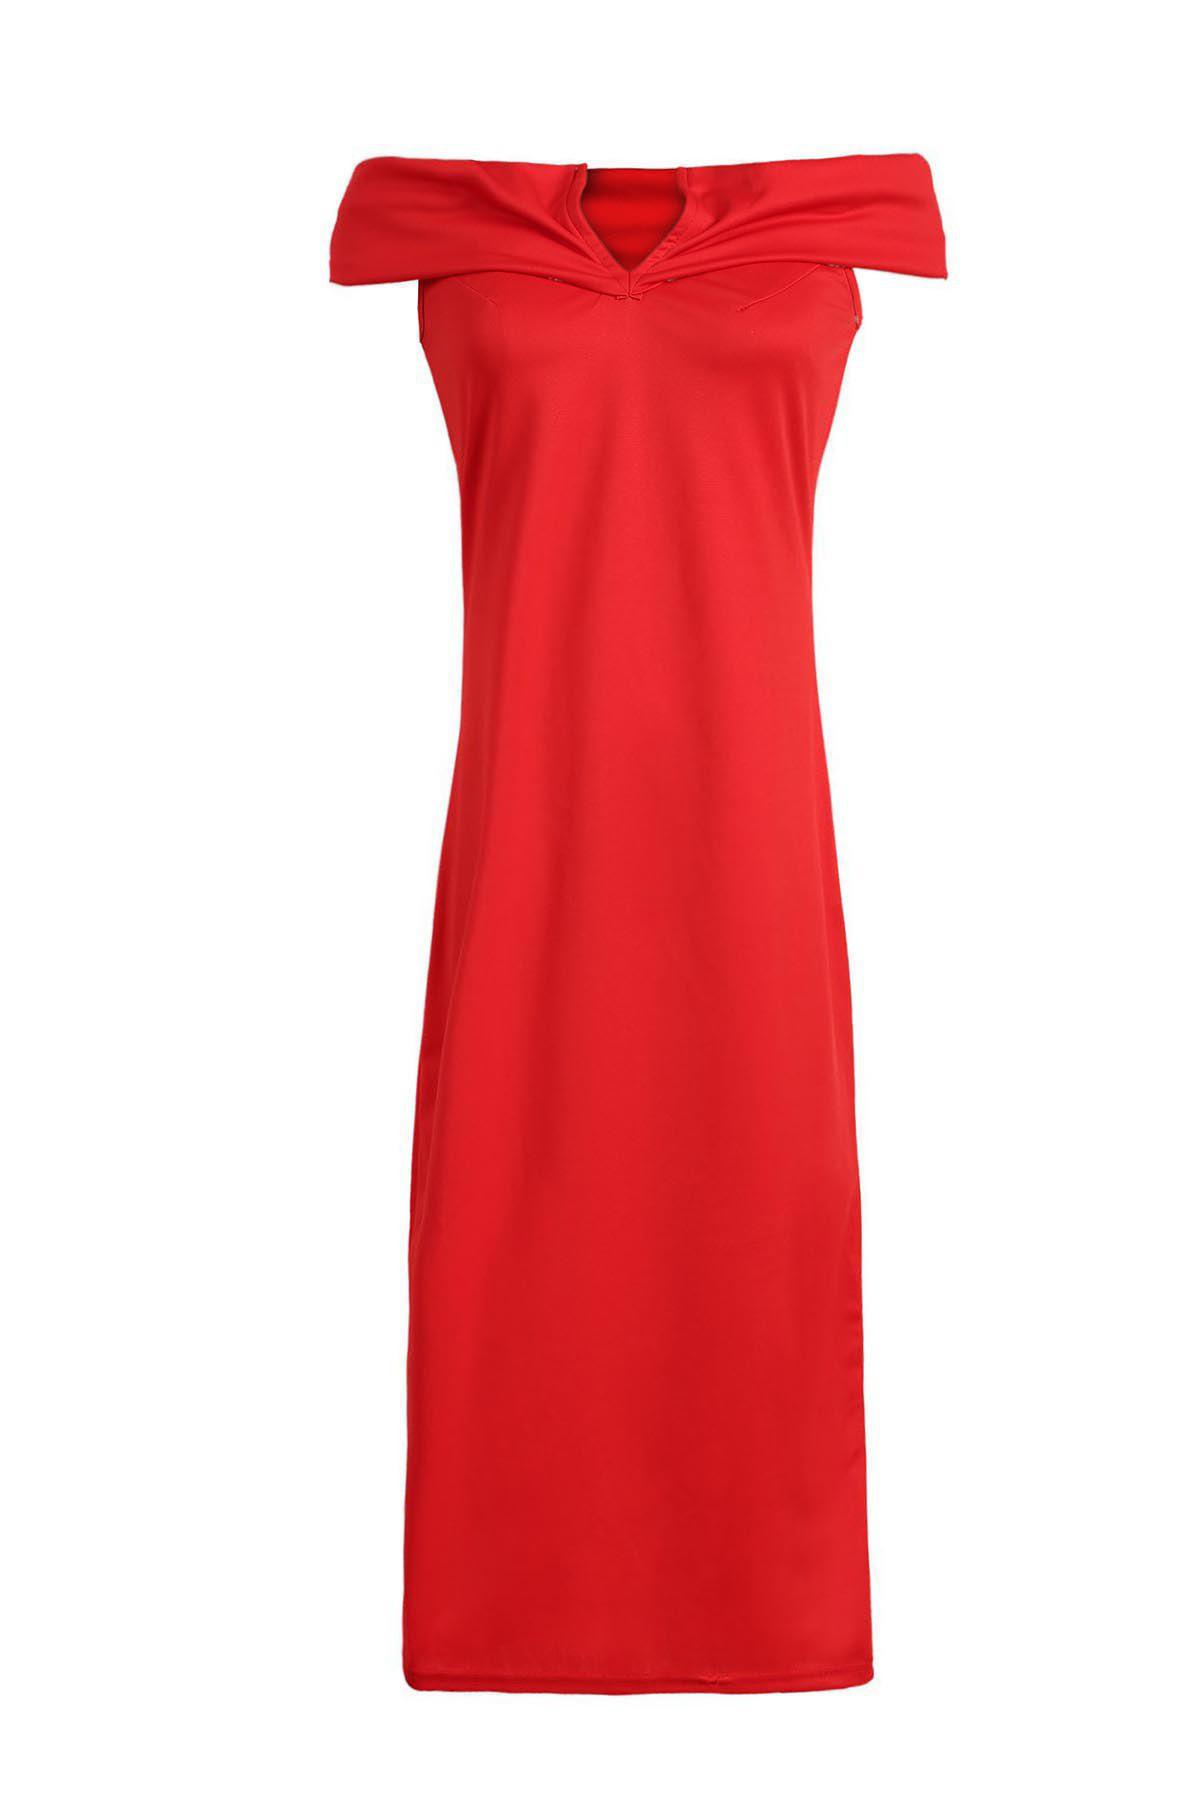 OL Style Off The Shoulder Red Dress For Women ada instruments grounddrill 14 revers без шнека